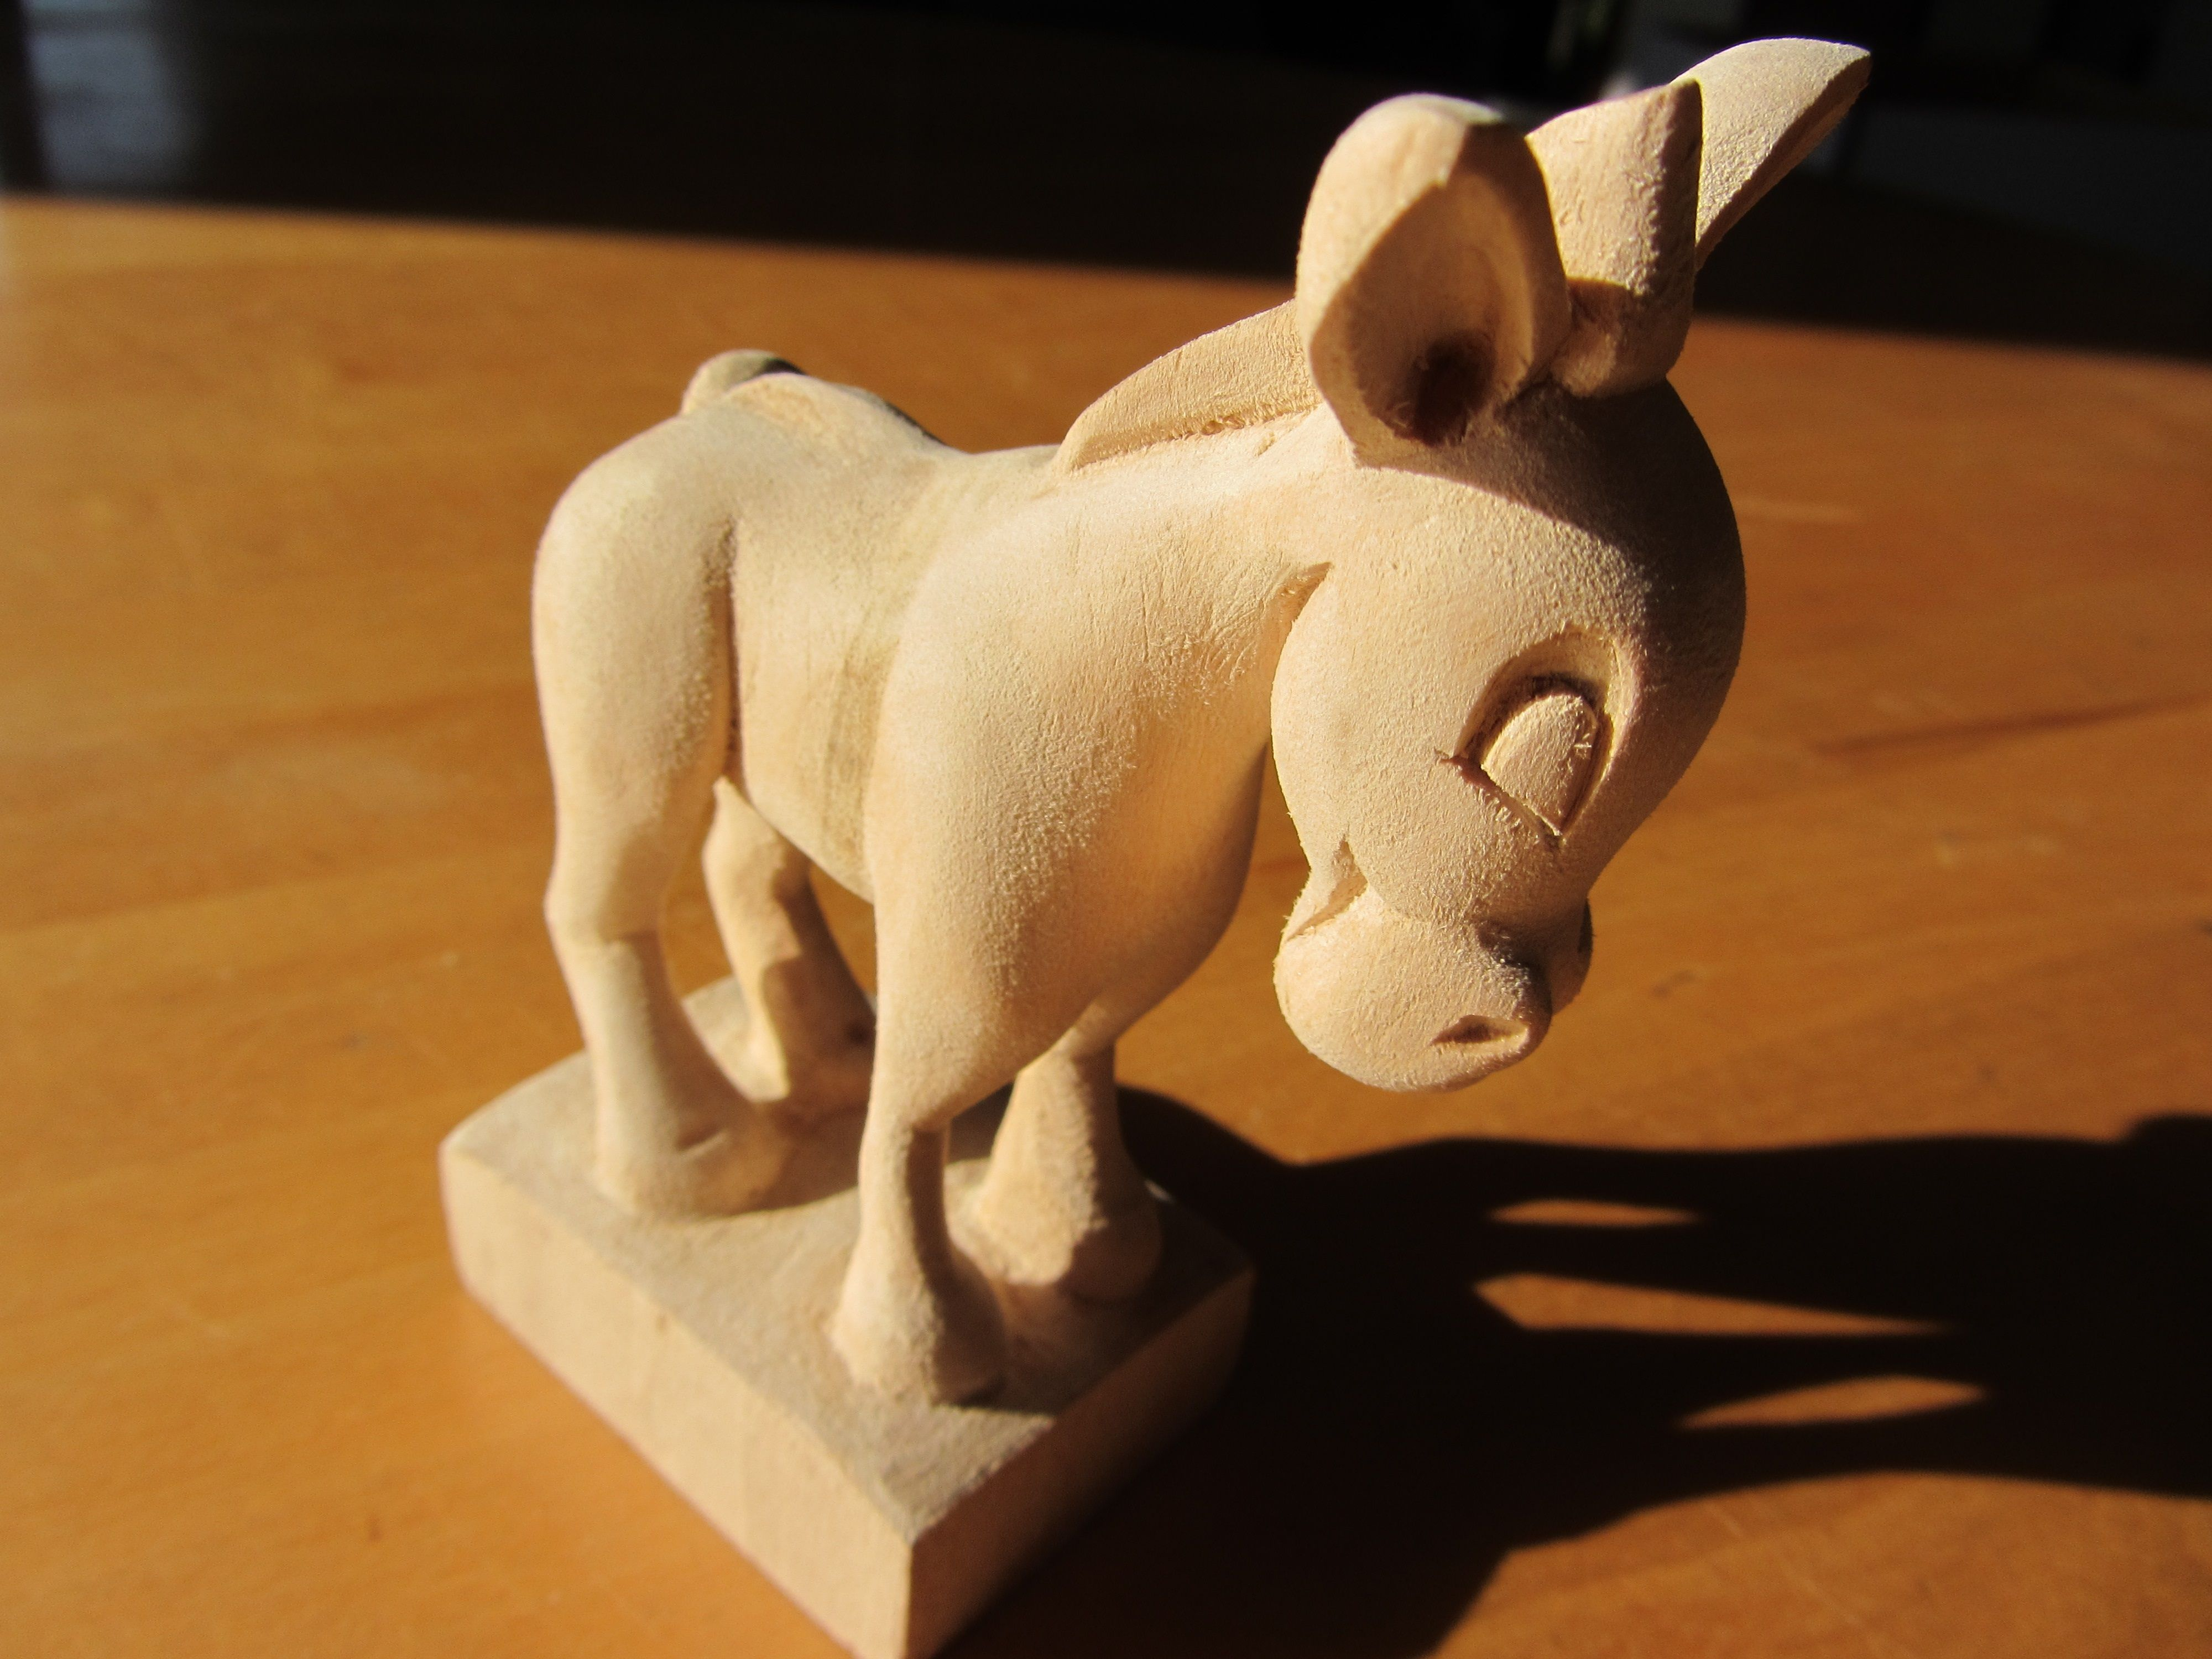 Whittled with a single carving knife Животные pinterest